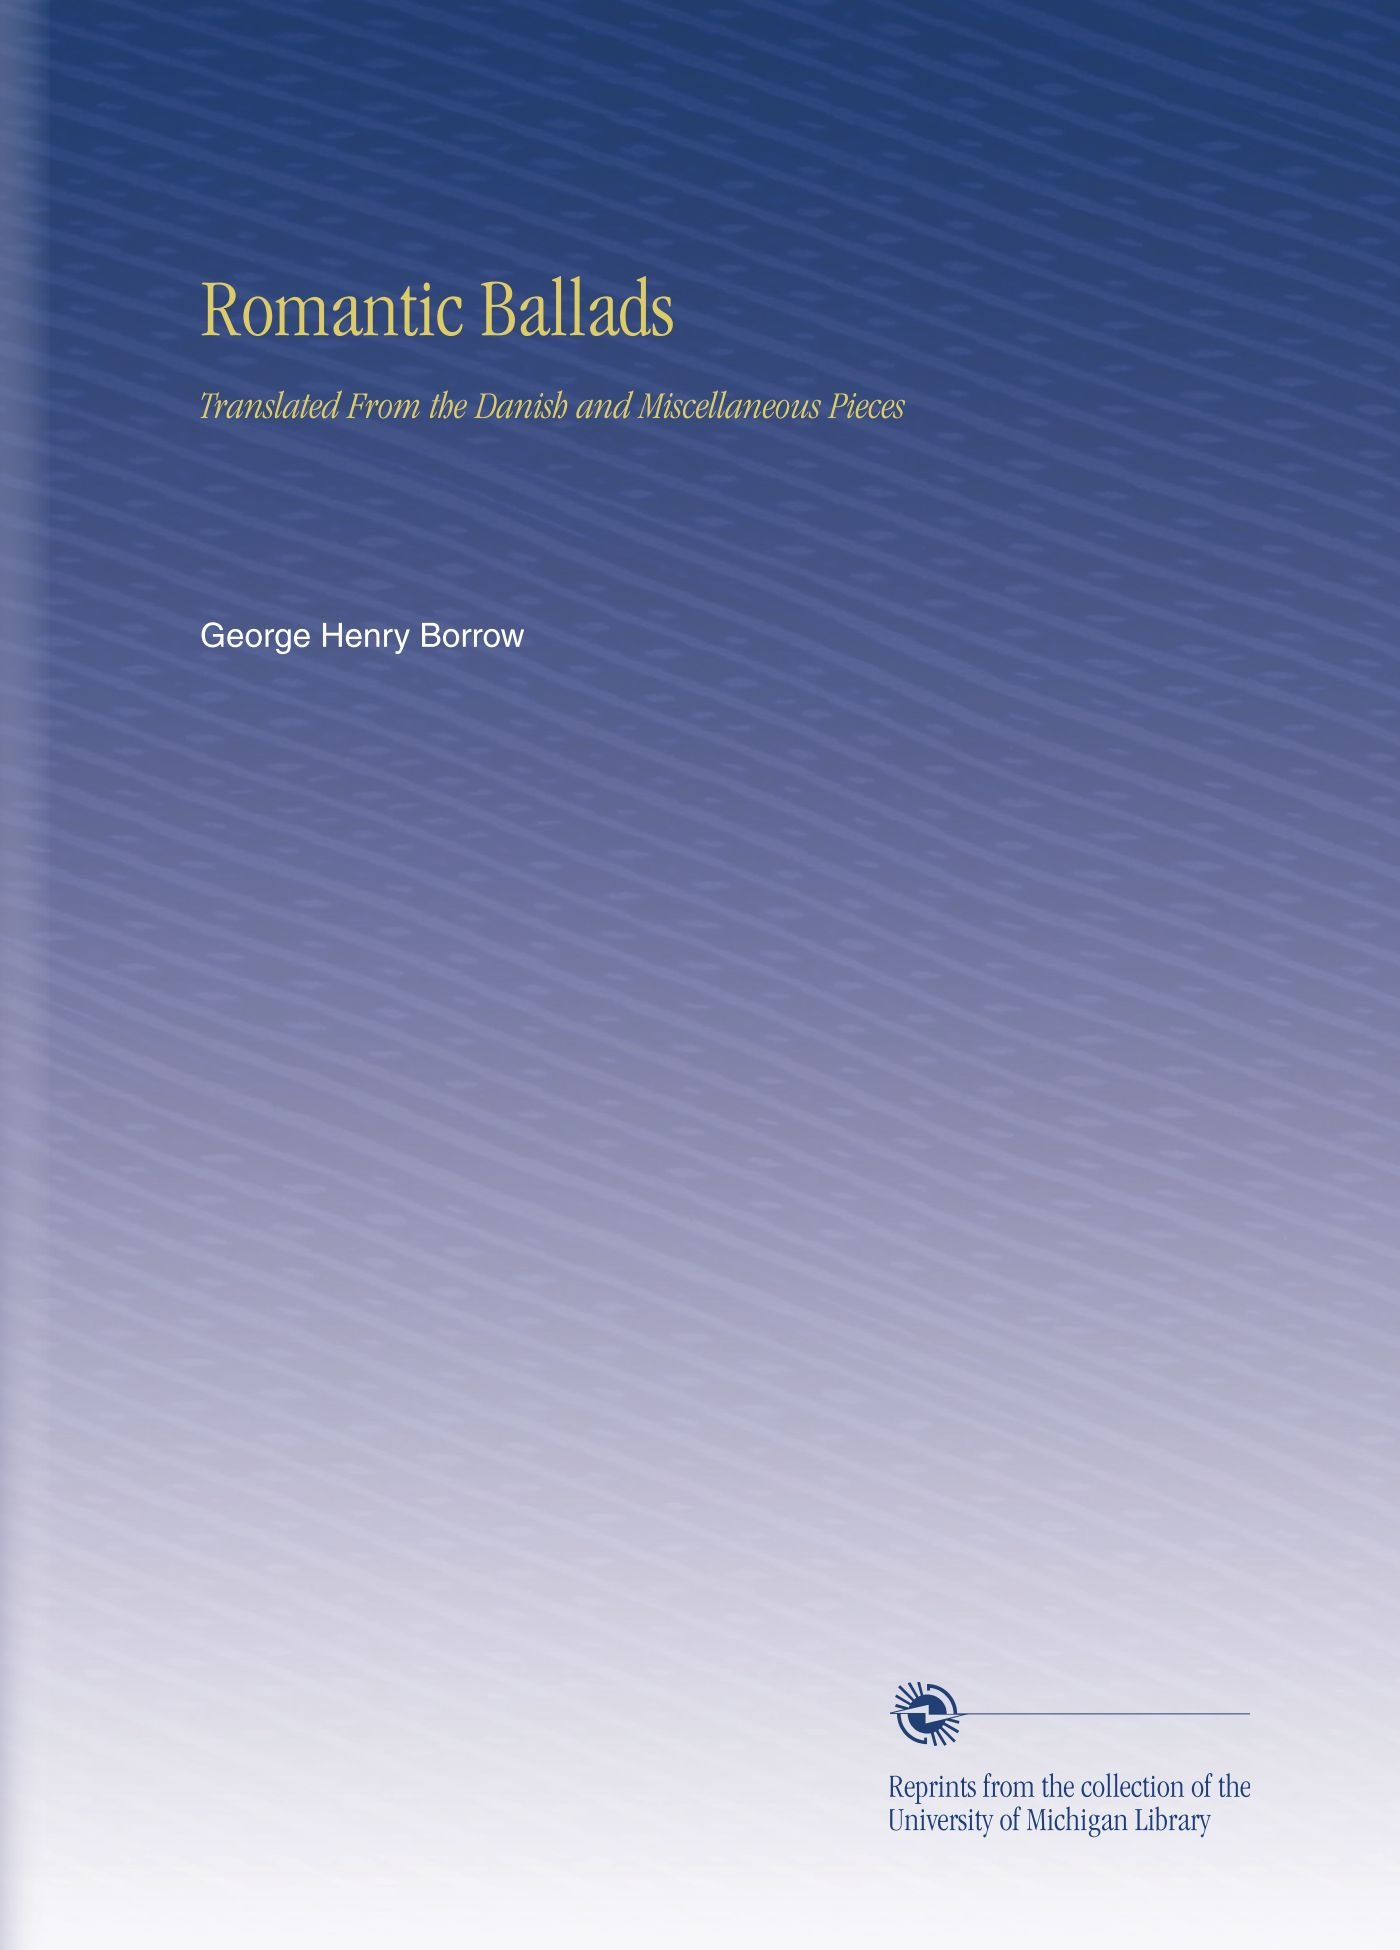 Romantic Ballads: Translated From the Danish and Miscellaneous Pieces by University of Michigan Library